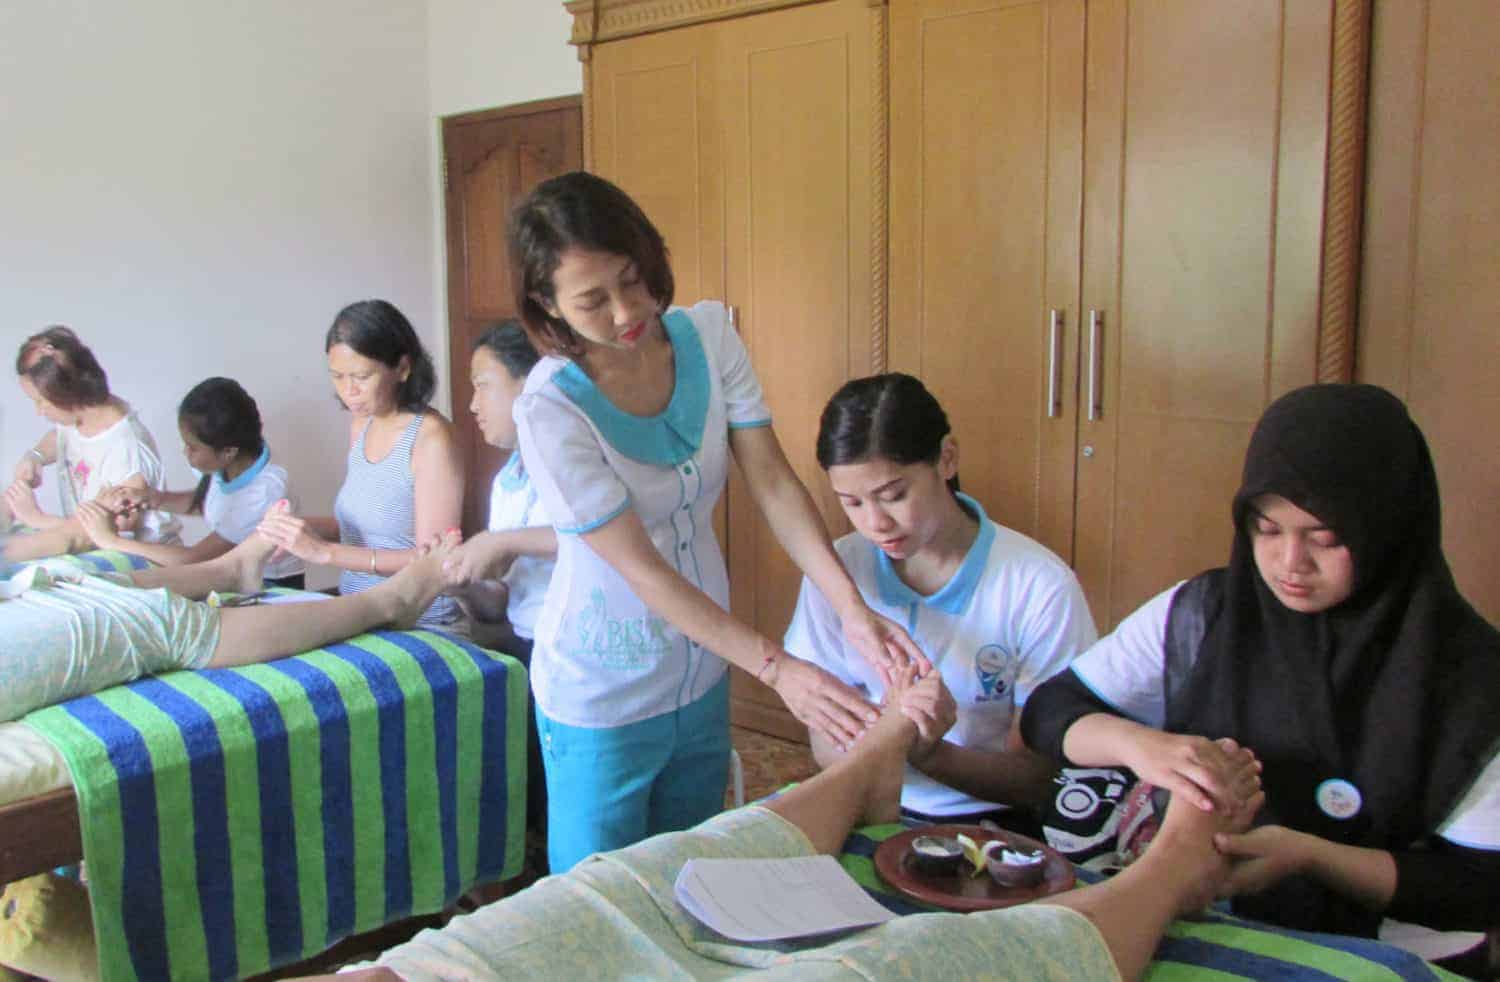 The Bali International Spa Academy, or BISA, is the ITEC Bali authorized training centre for spa, complementary therapies and beauty education.